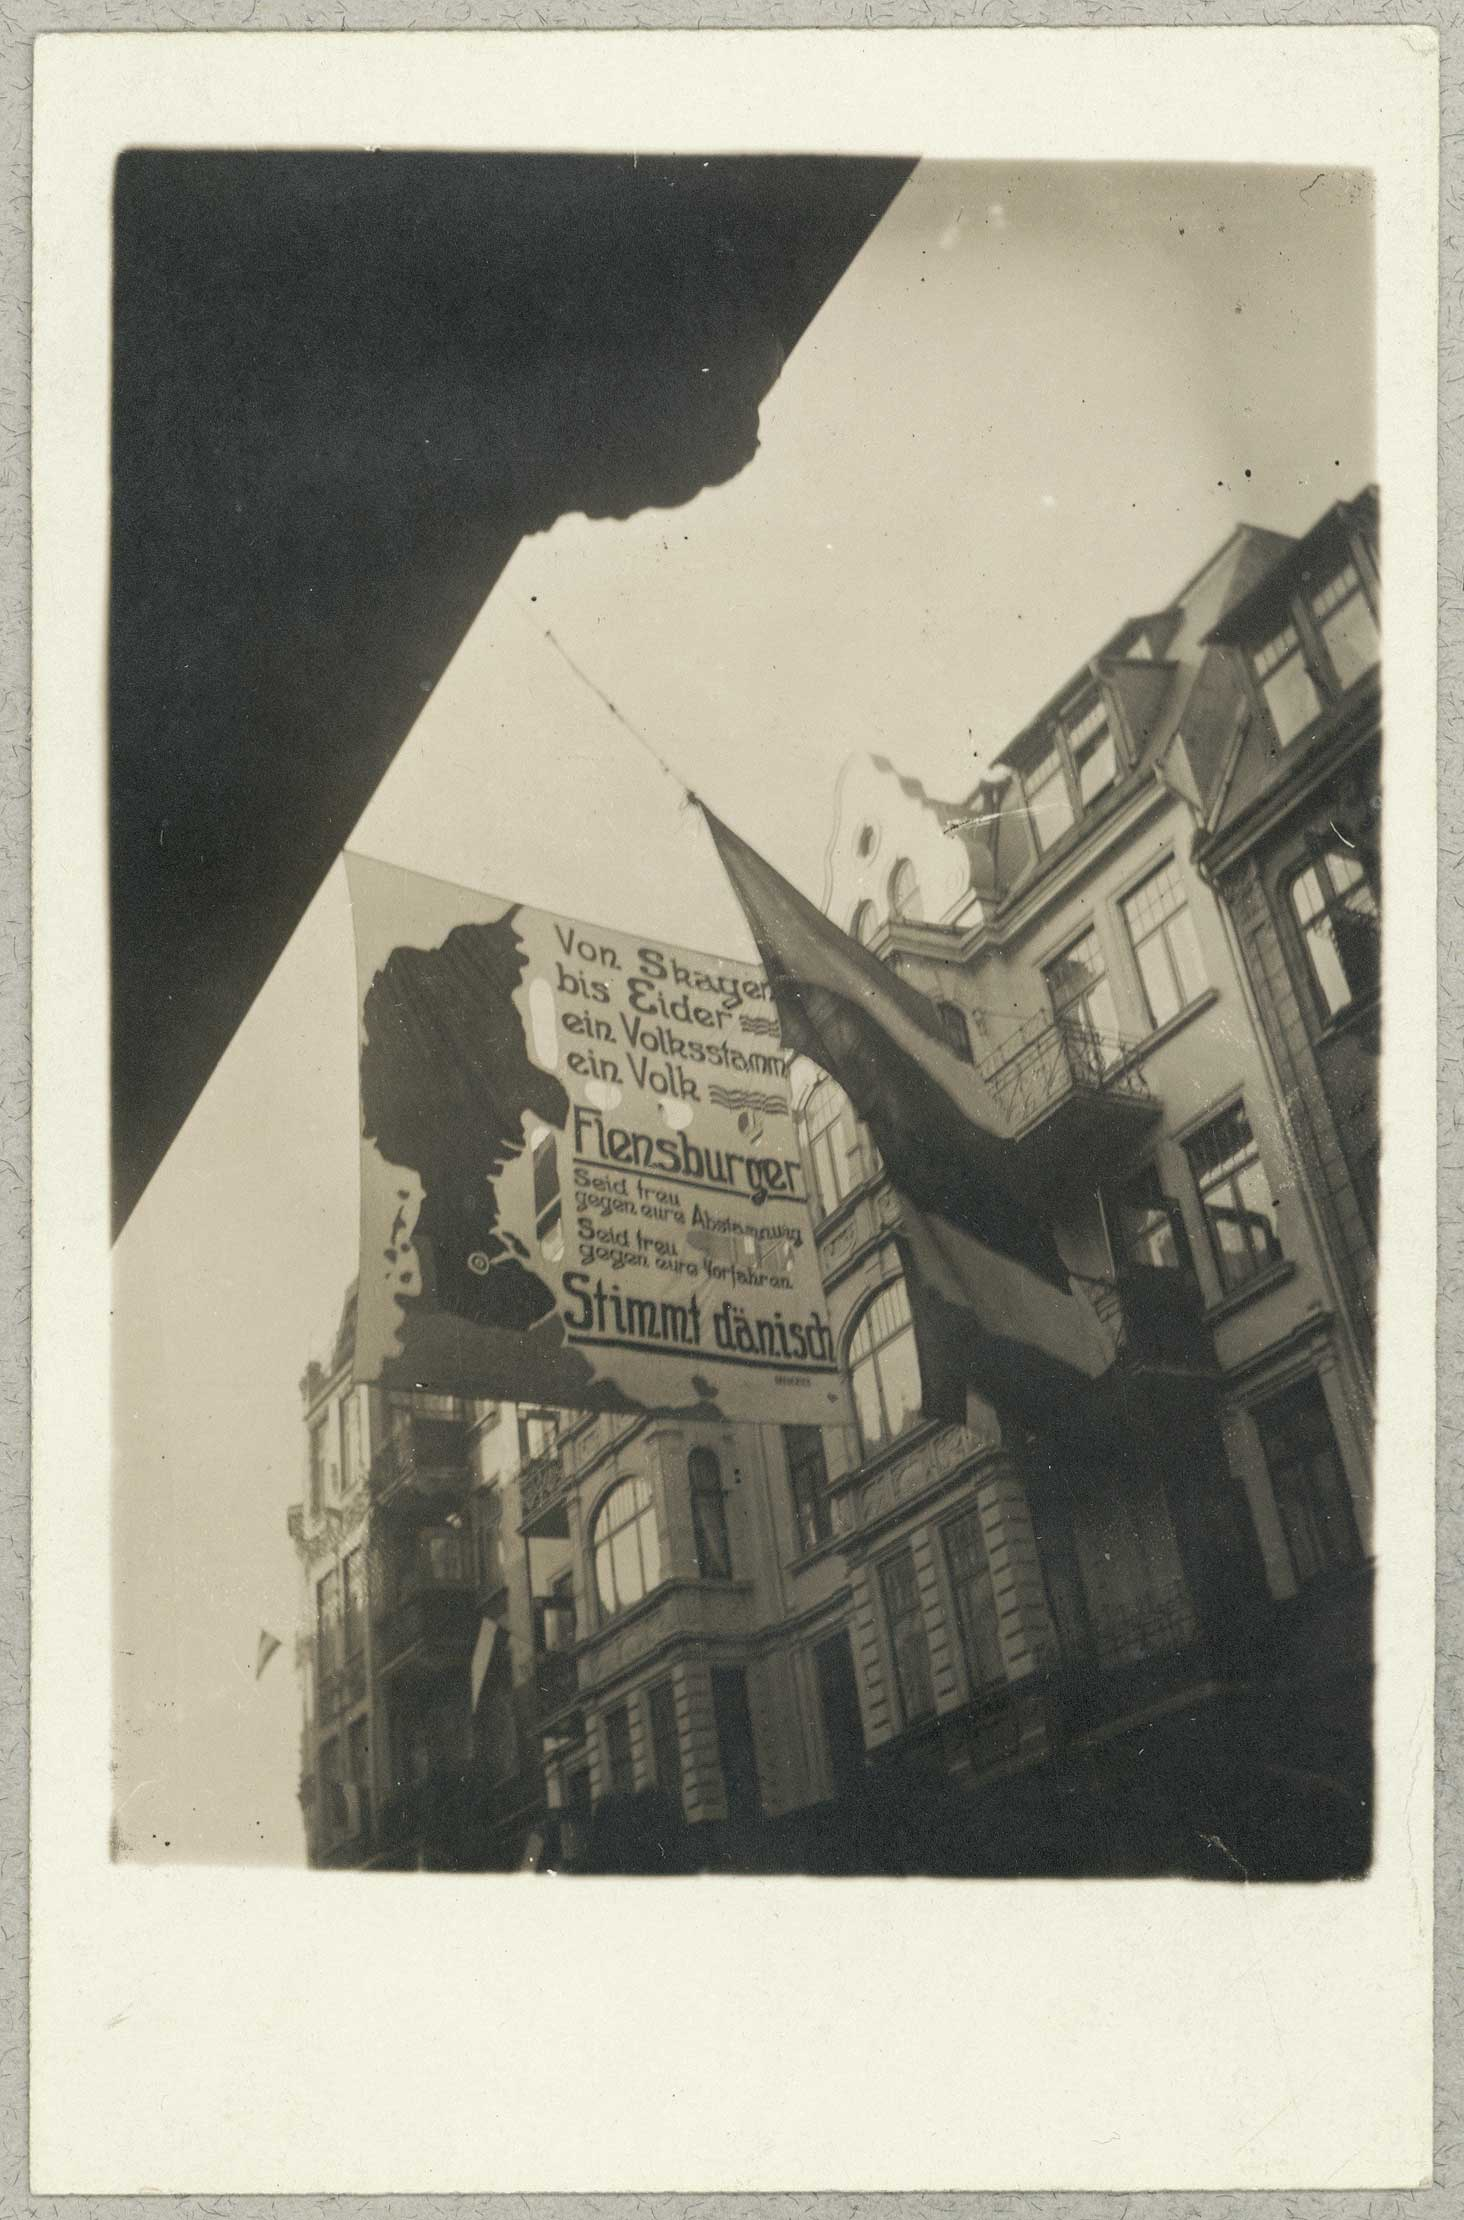 Campaigning following one of the referendums decreed by the Treaty of Versailles. This huge banner in Flensburg urged people, in German, to vote in favour of Danish rule over German. A majority of 75% voted in favour of German rule.